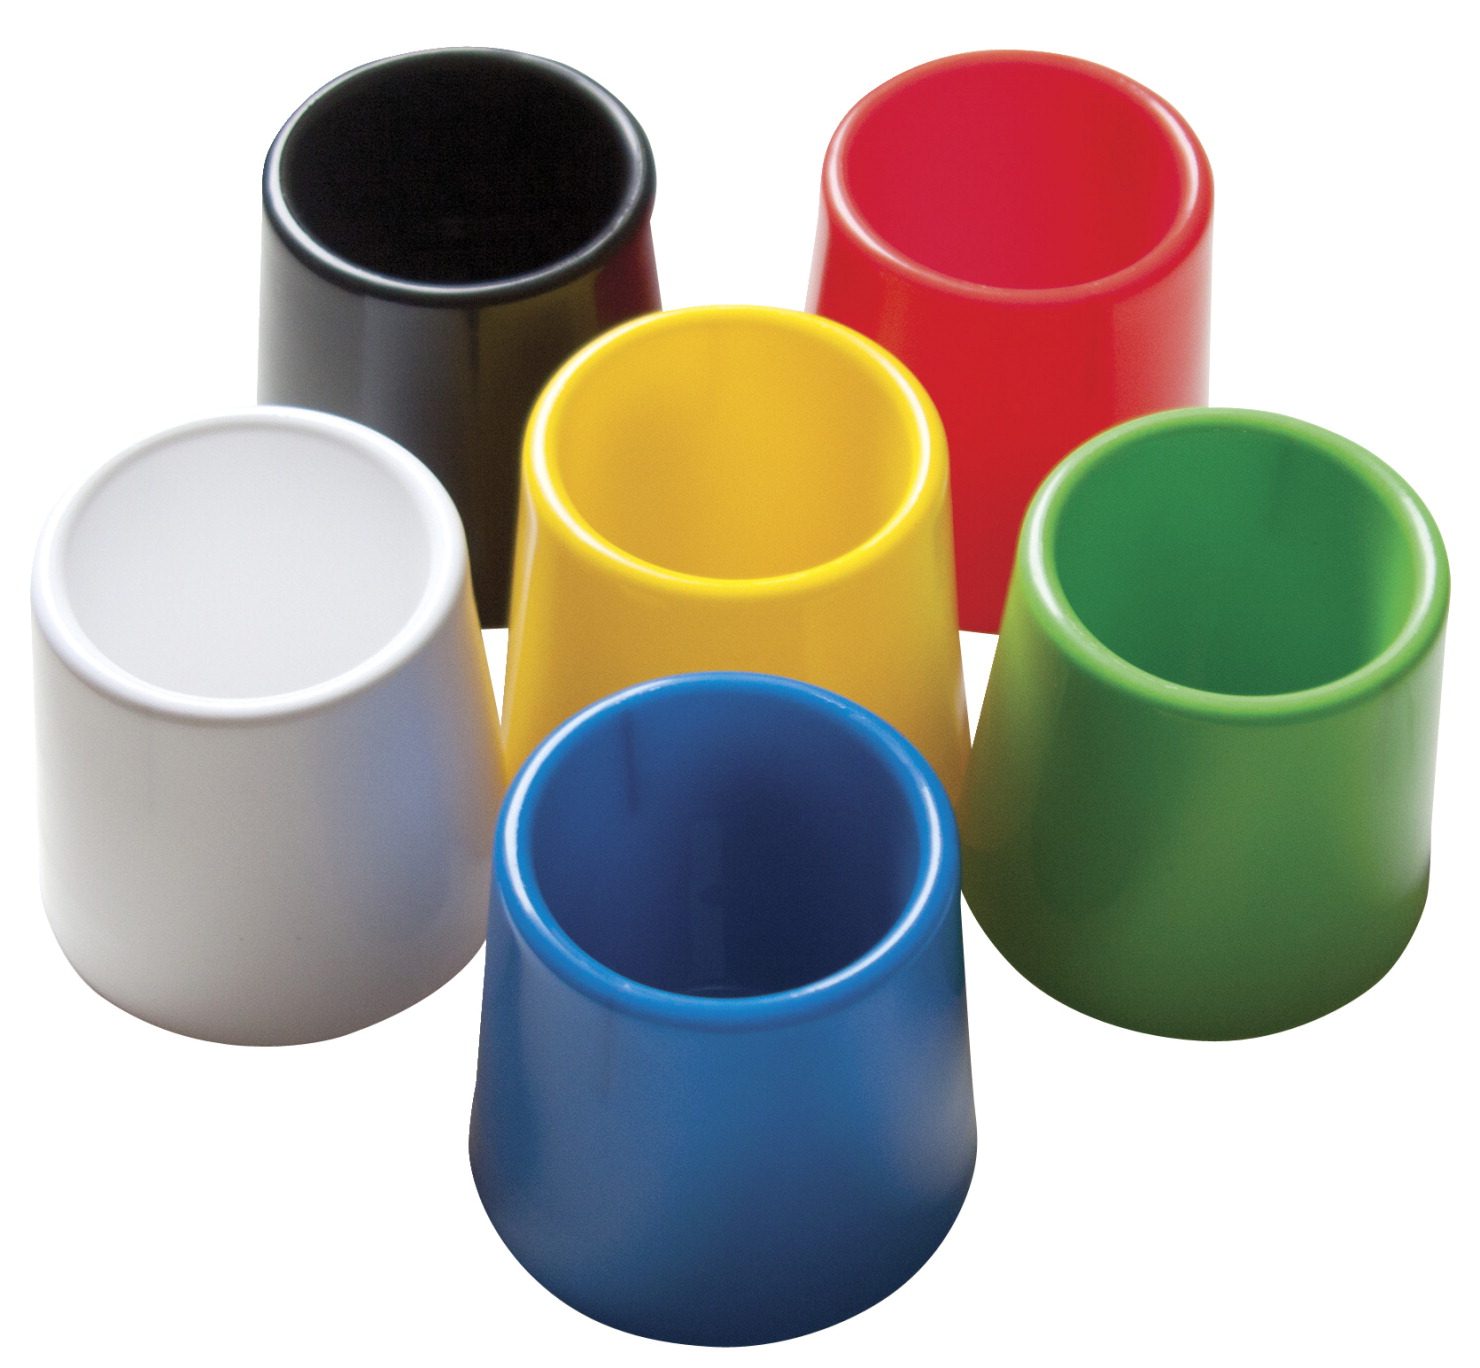 School Smart Plastic Water Pot Set Assorted Colors 1 4 3 X